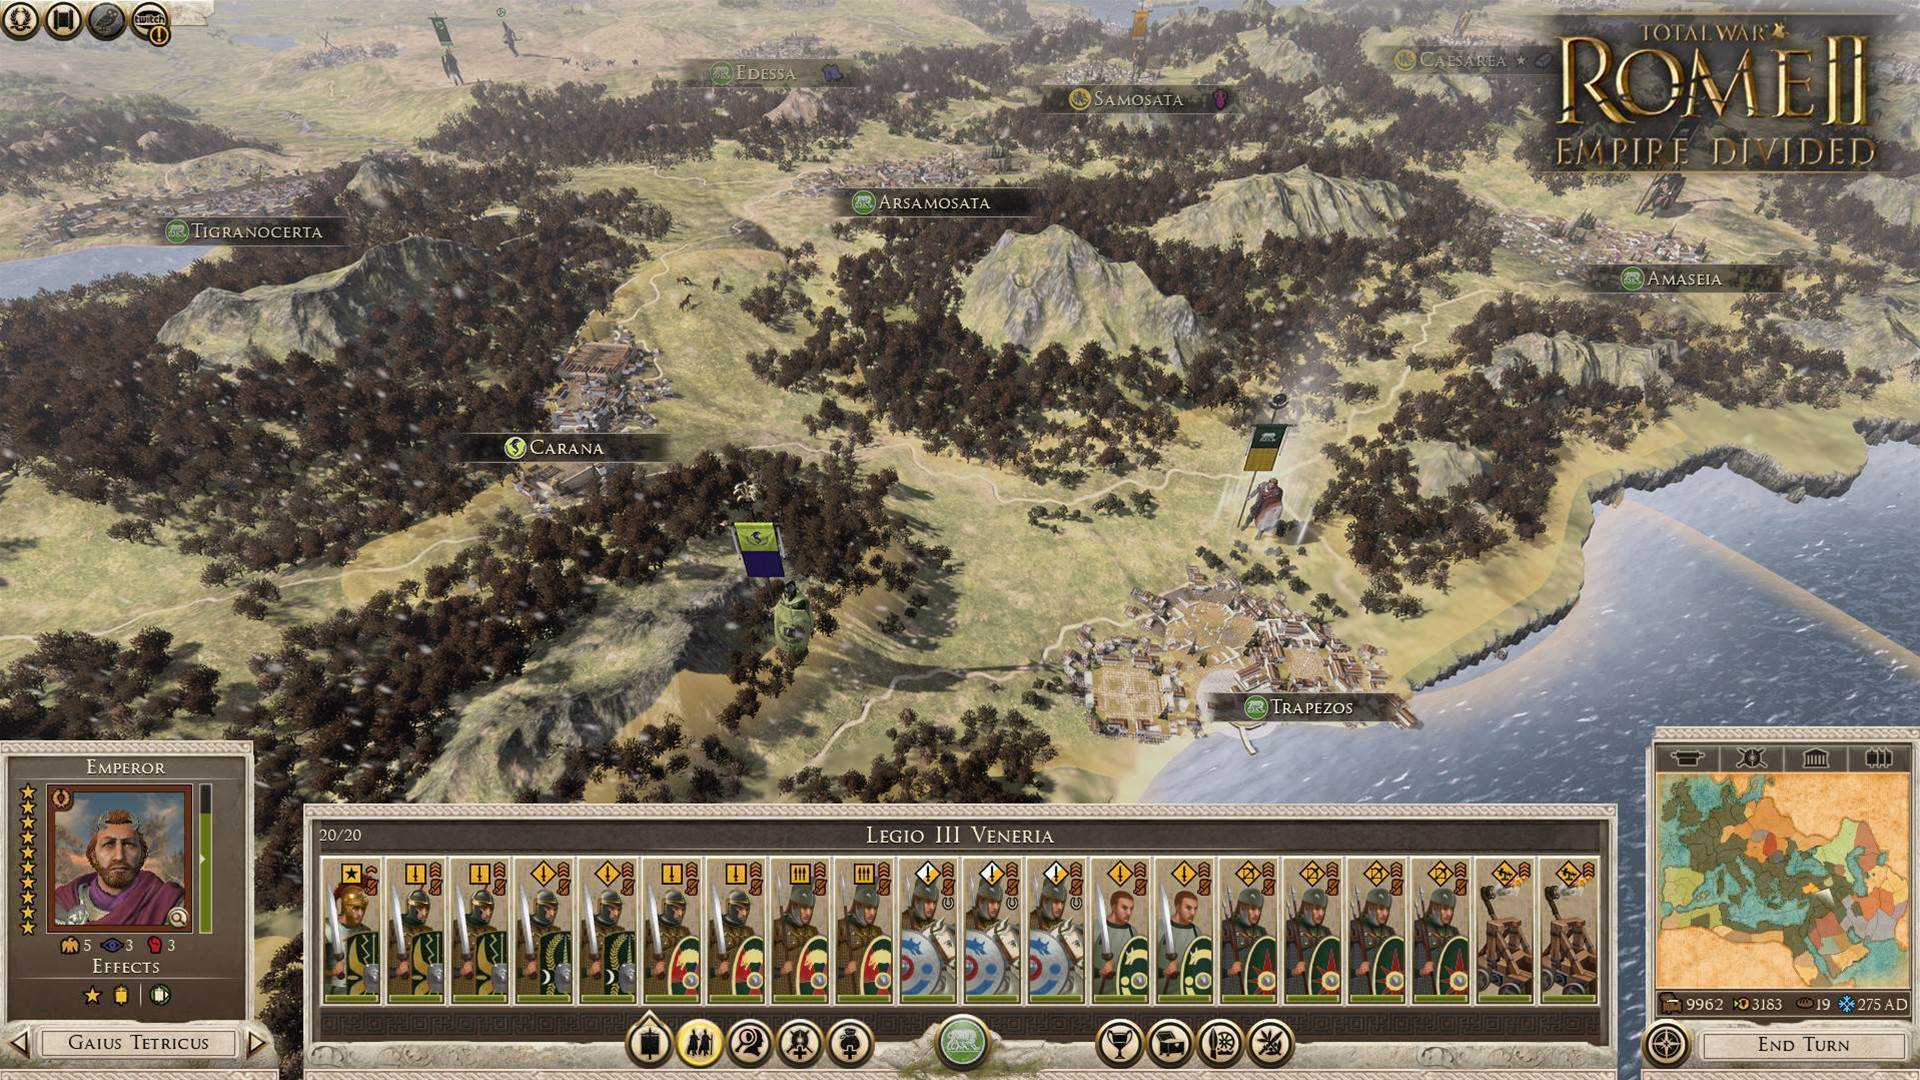 New Rome II: Empire Divided campaign out now